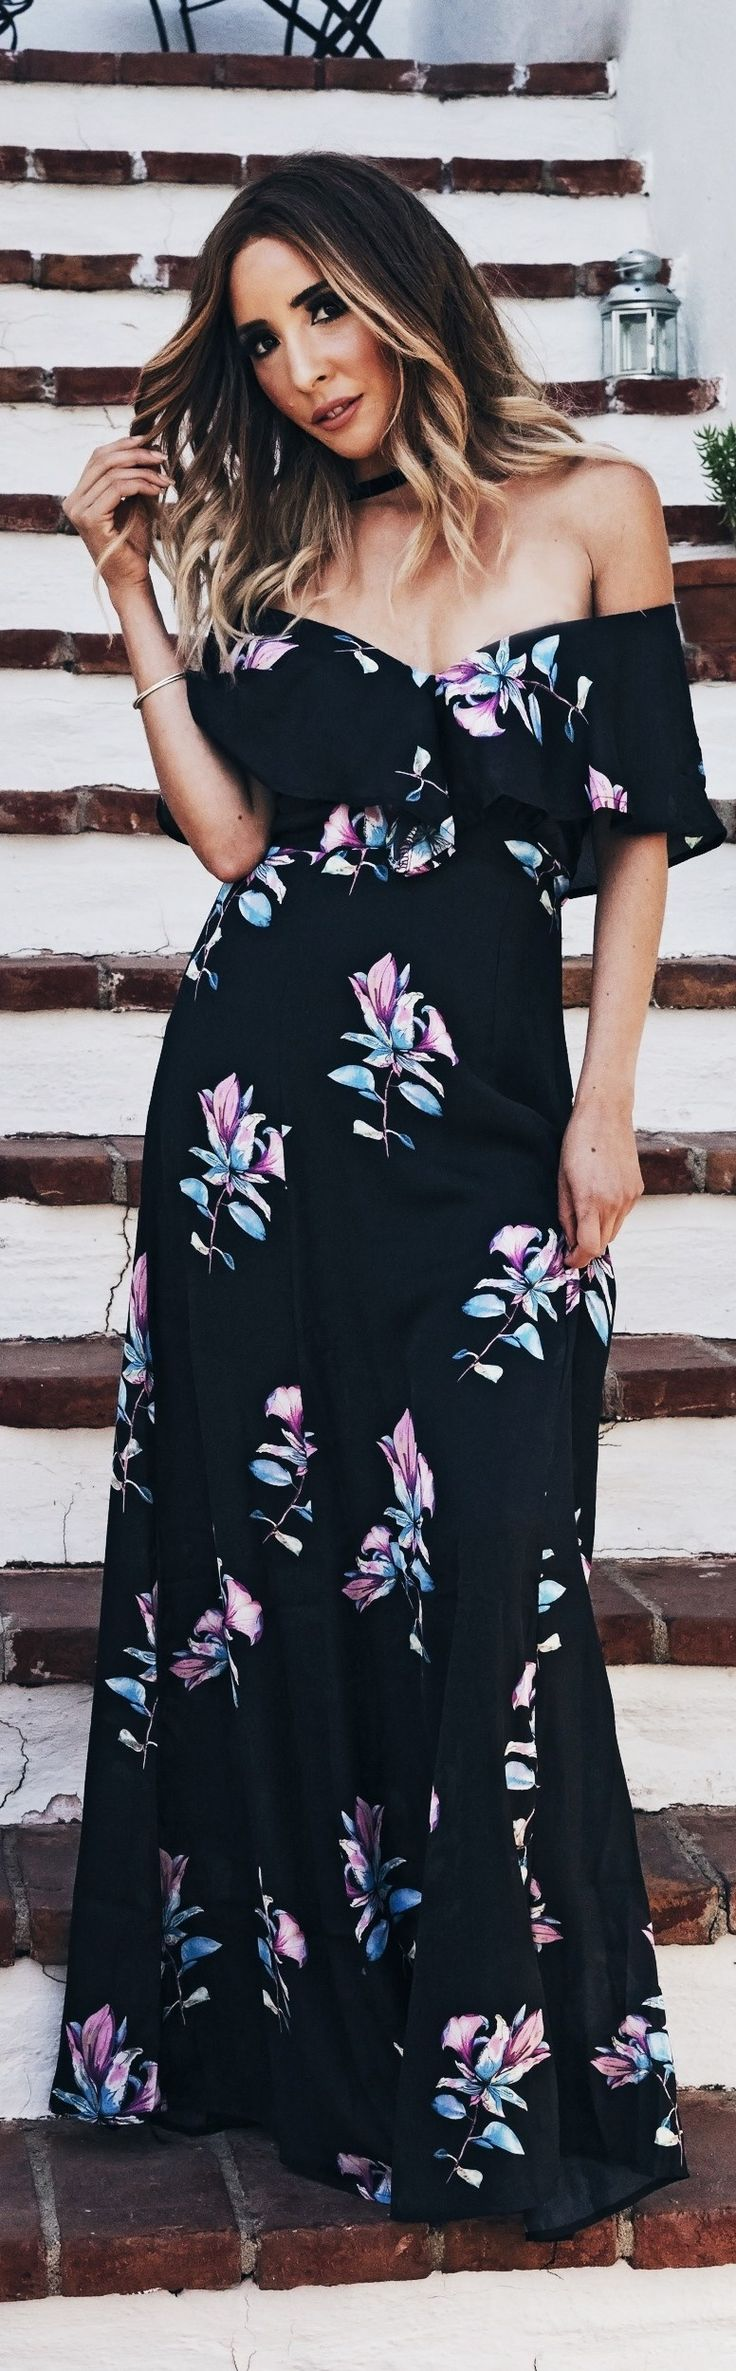 Floral Maxi // Fashion Trend by Haute Instinct